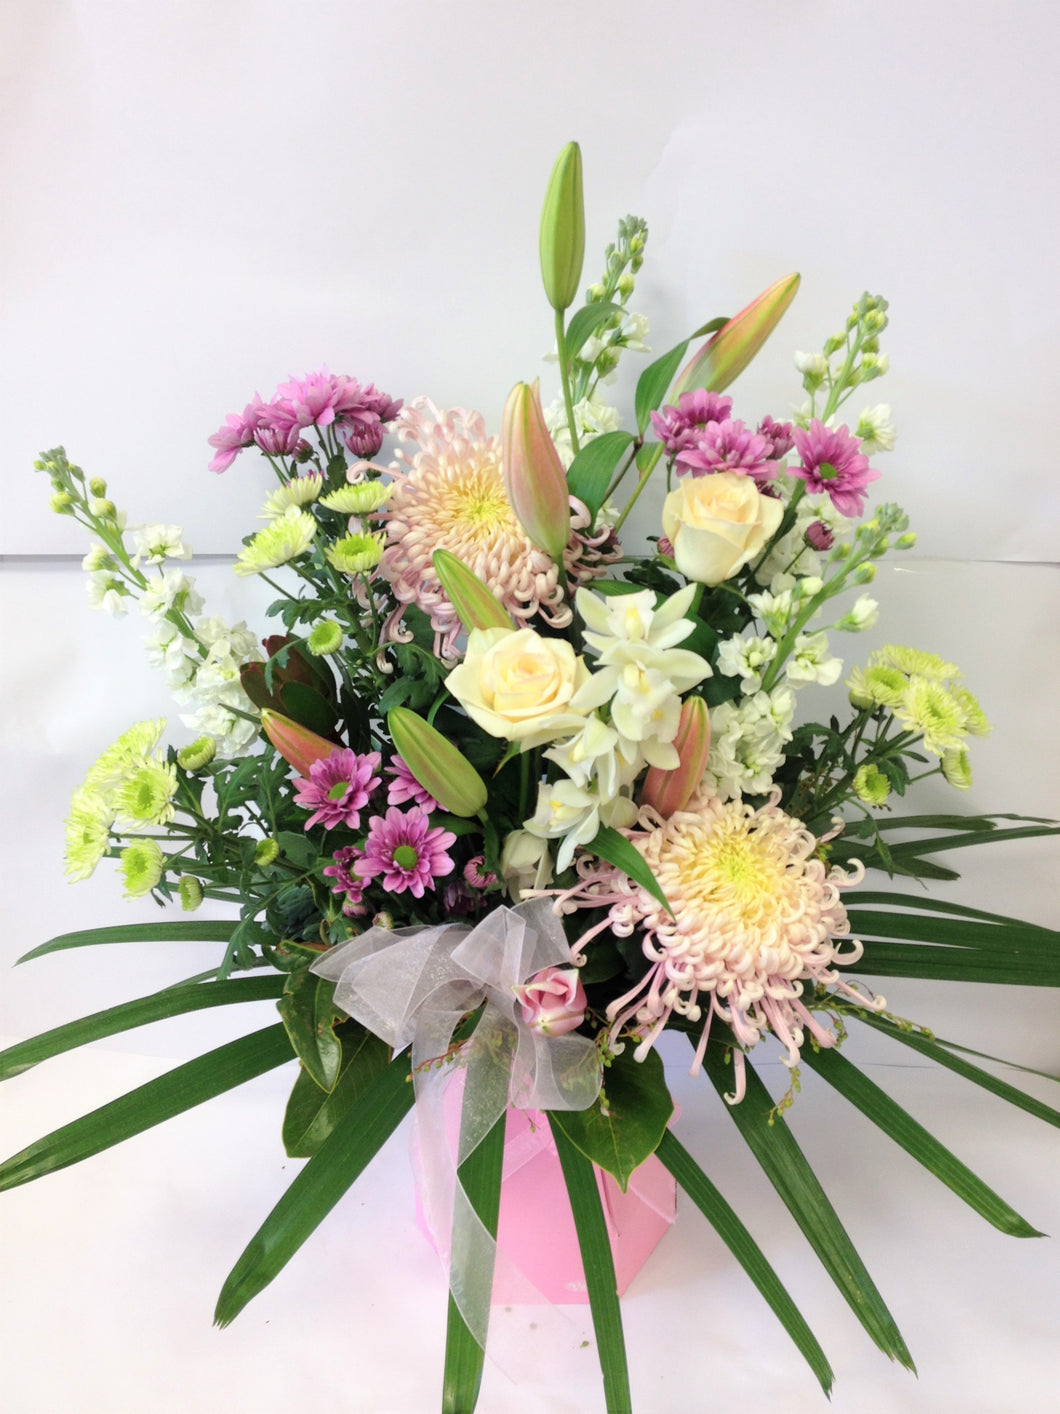 Soft coloured waterbox, Mothers day, Sympathy Water box flowers,